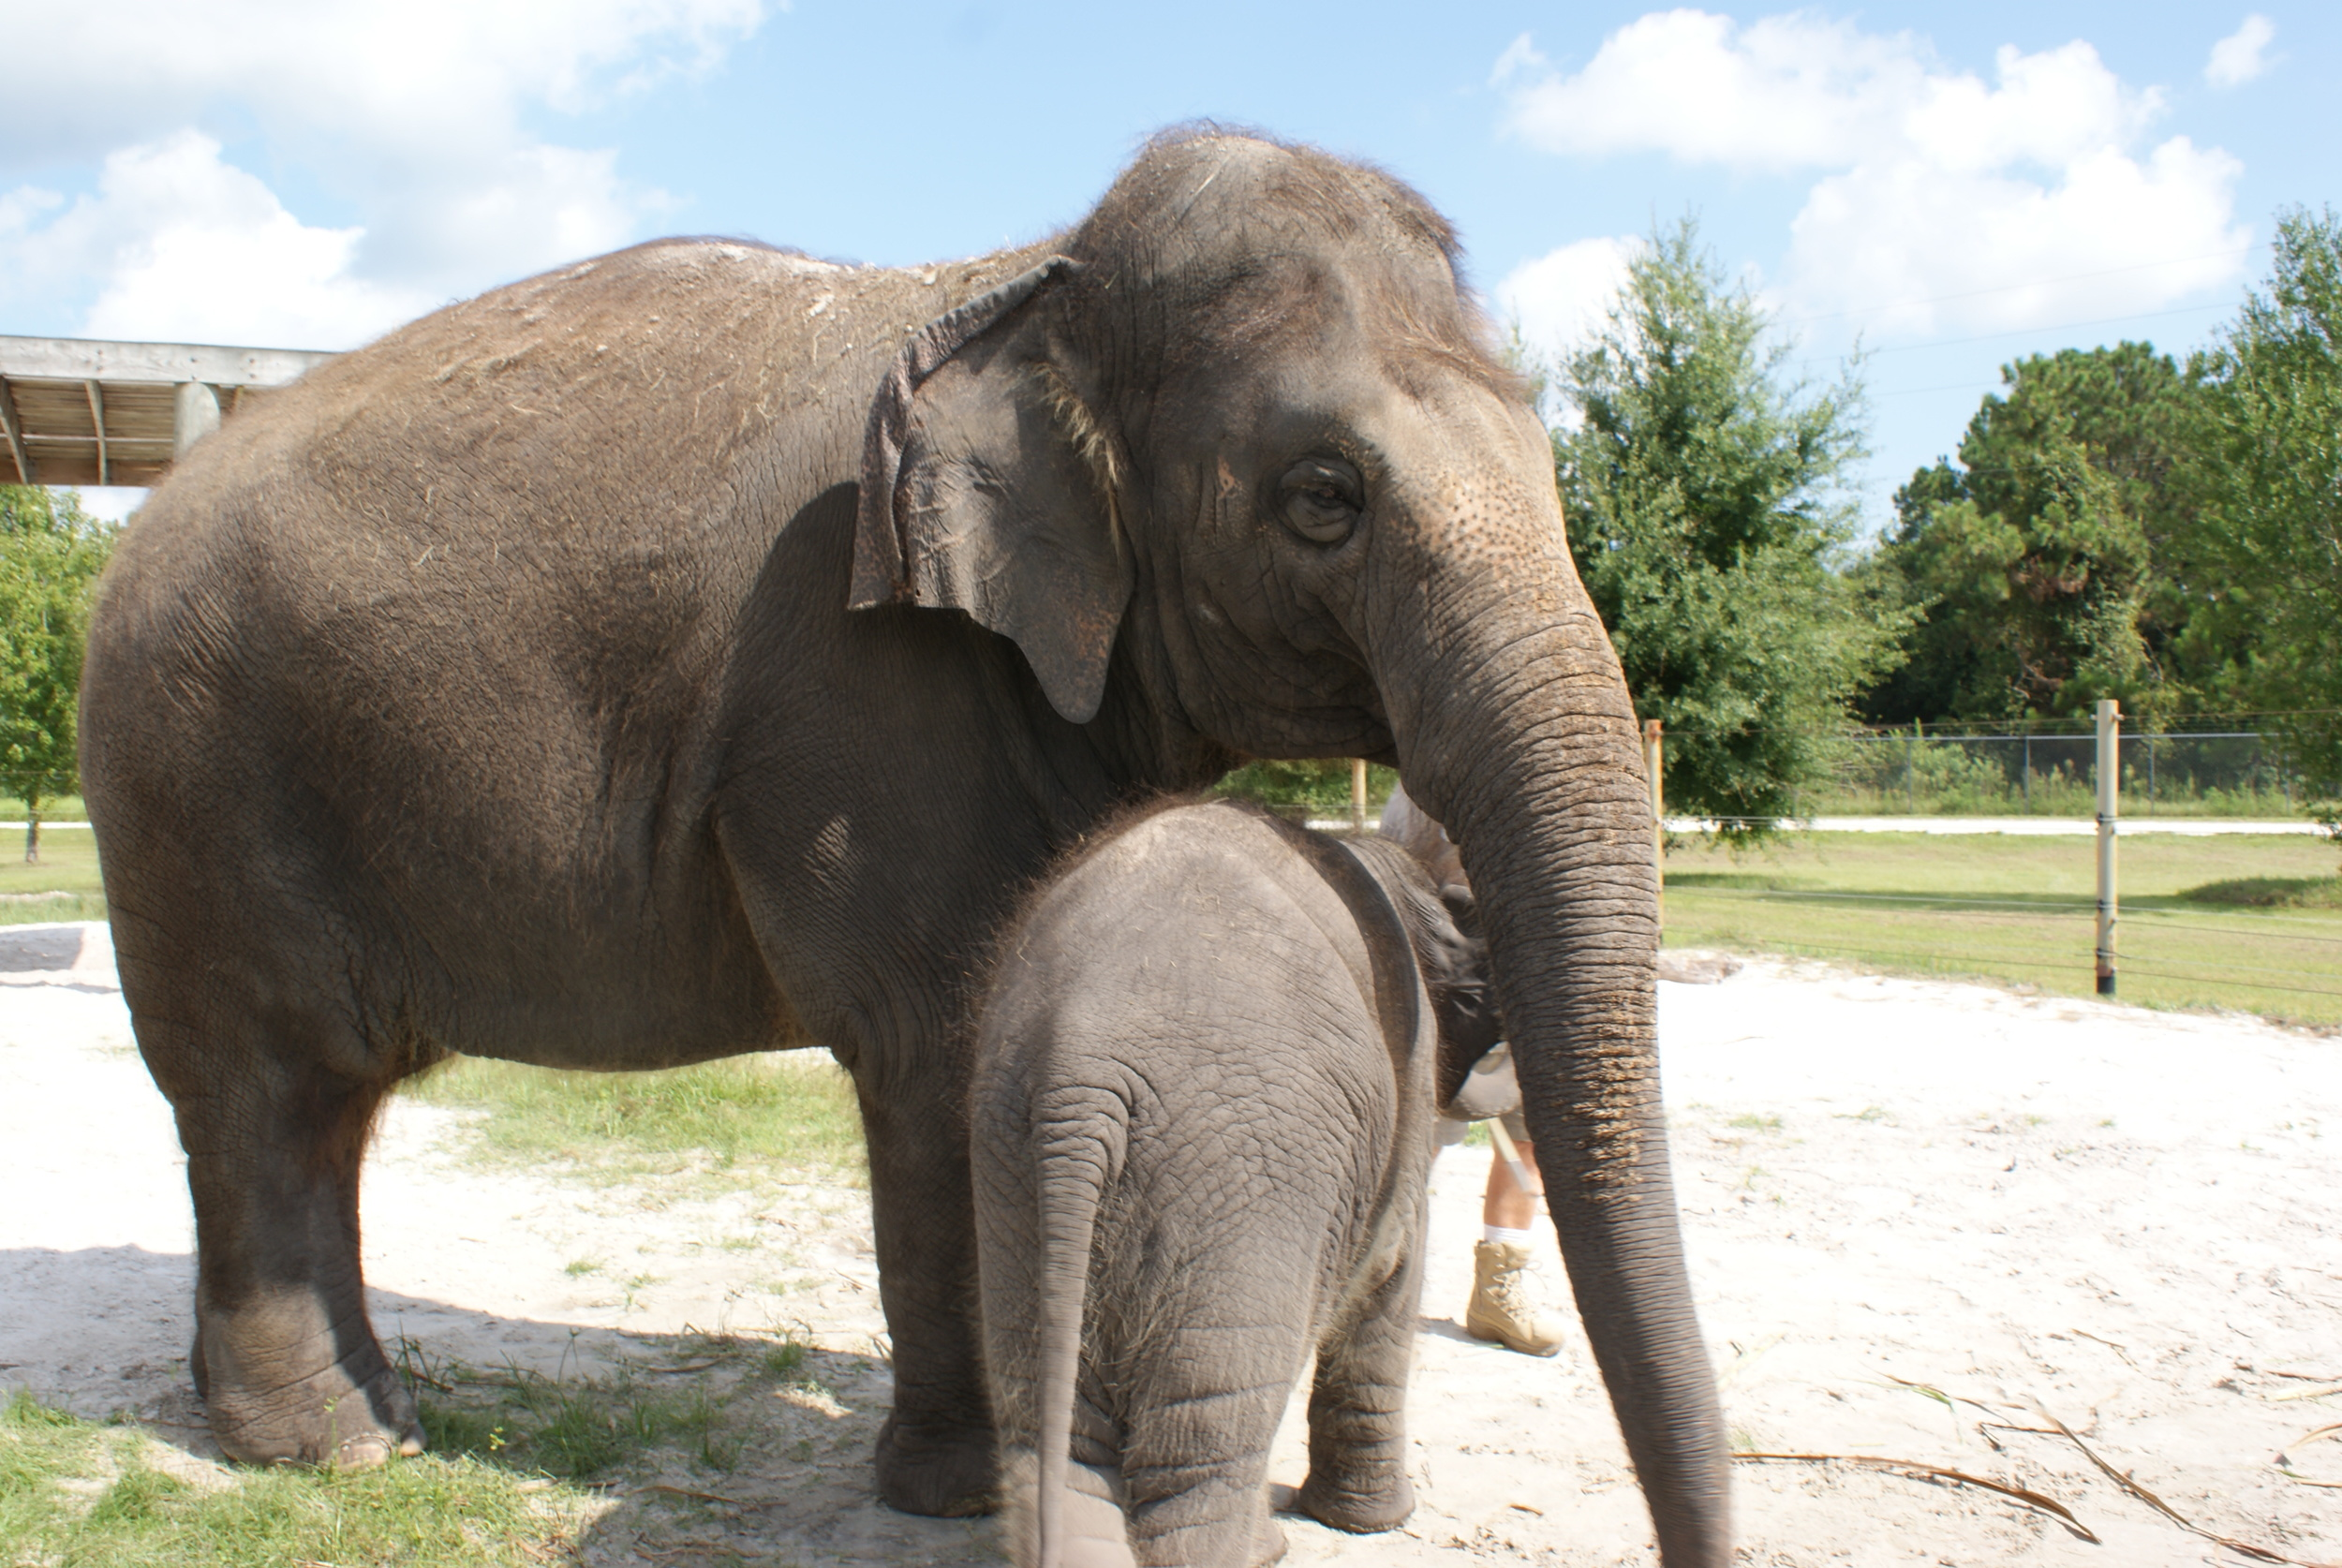 Elephant Conservation Ctr Aug 2014 145.JPG